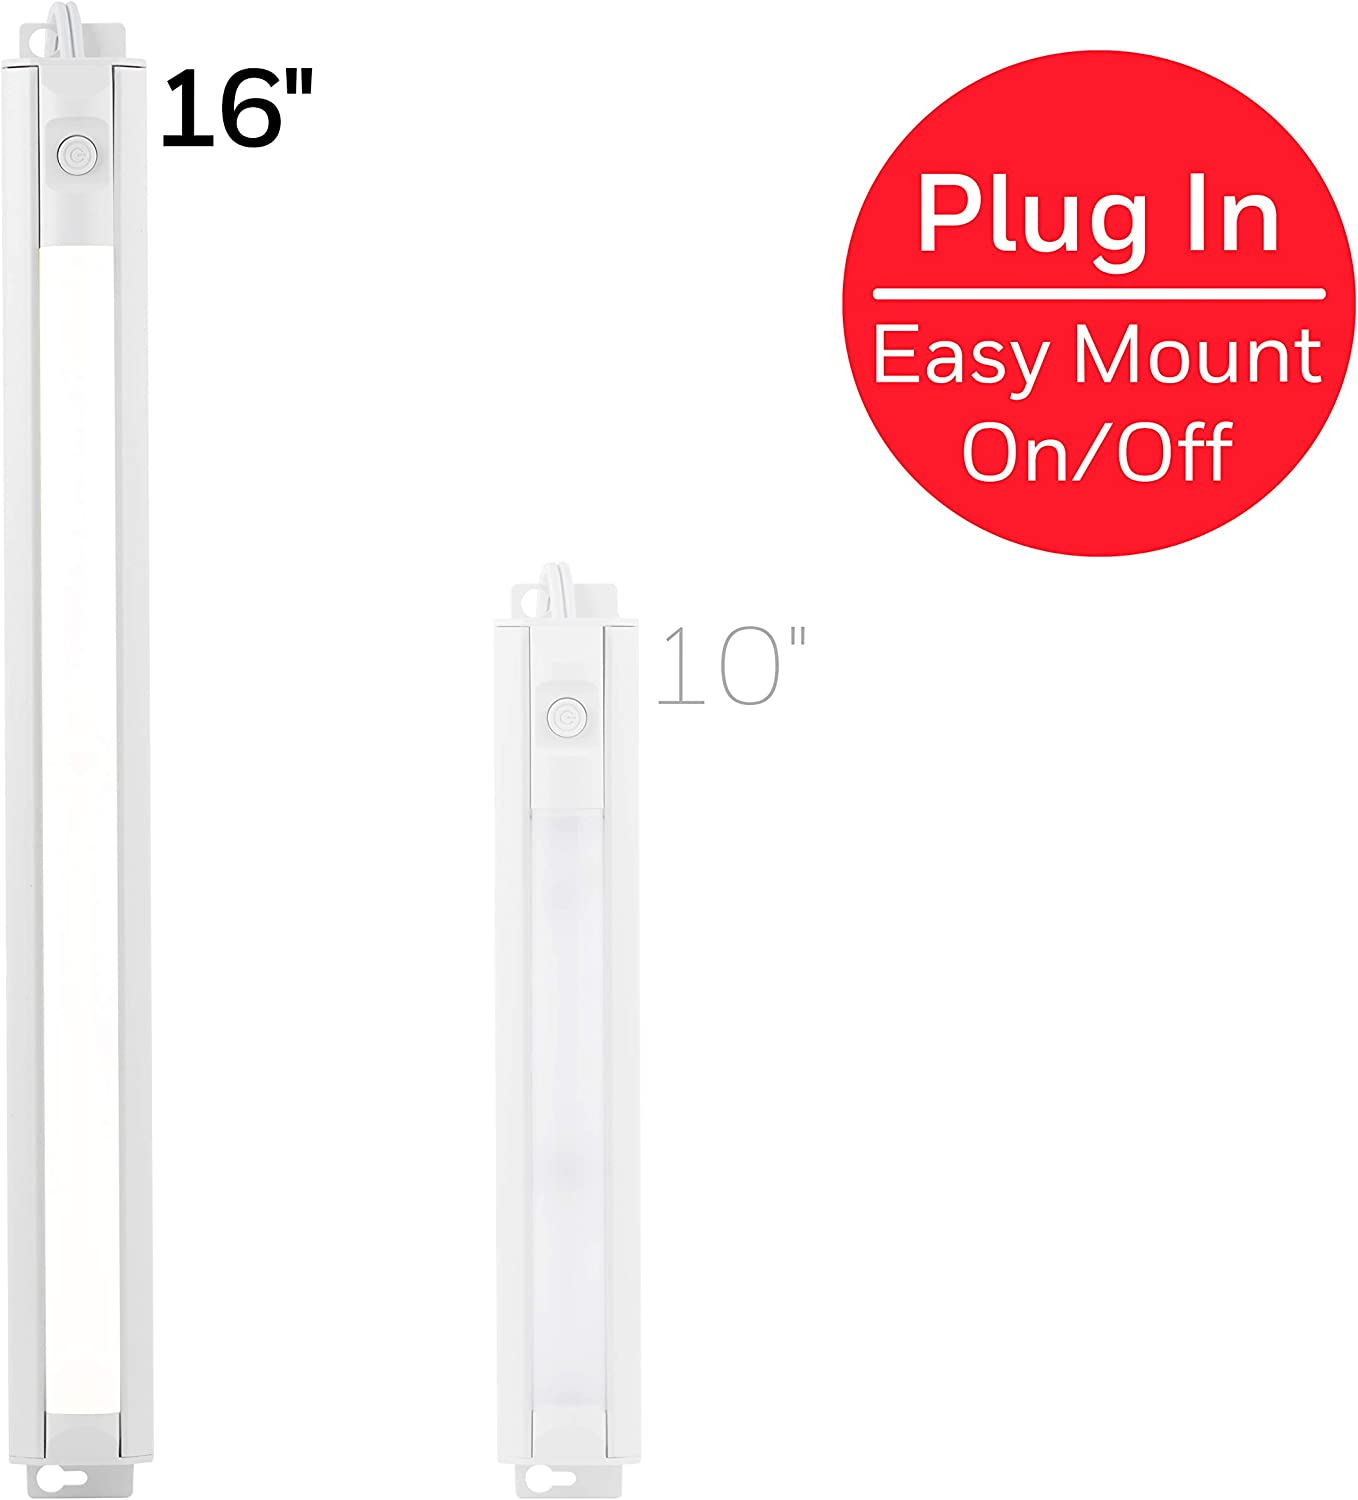 Honeywell 16in. LED Fixture, Bar, Flat Plug, Slim, Switch, Warm Bright, Closet, Cabinet Lighting, 44128, 16 in, White